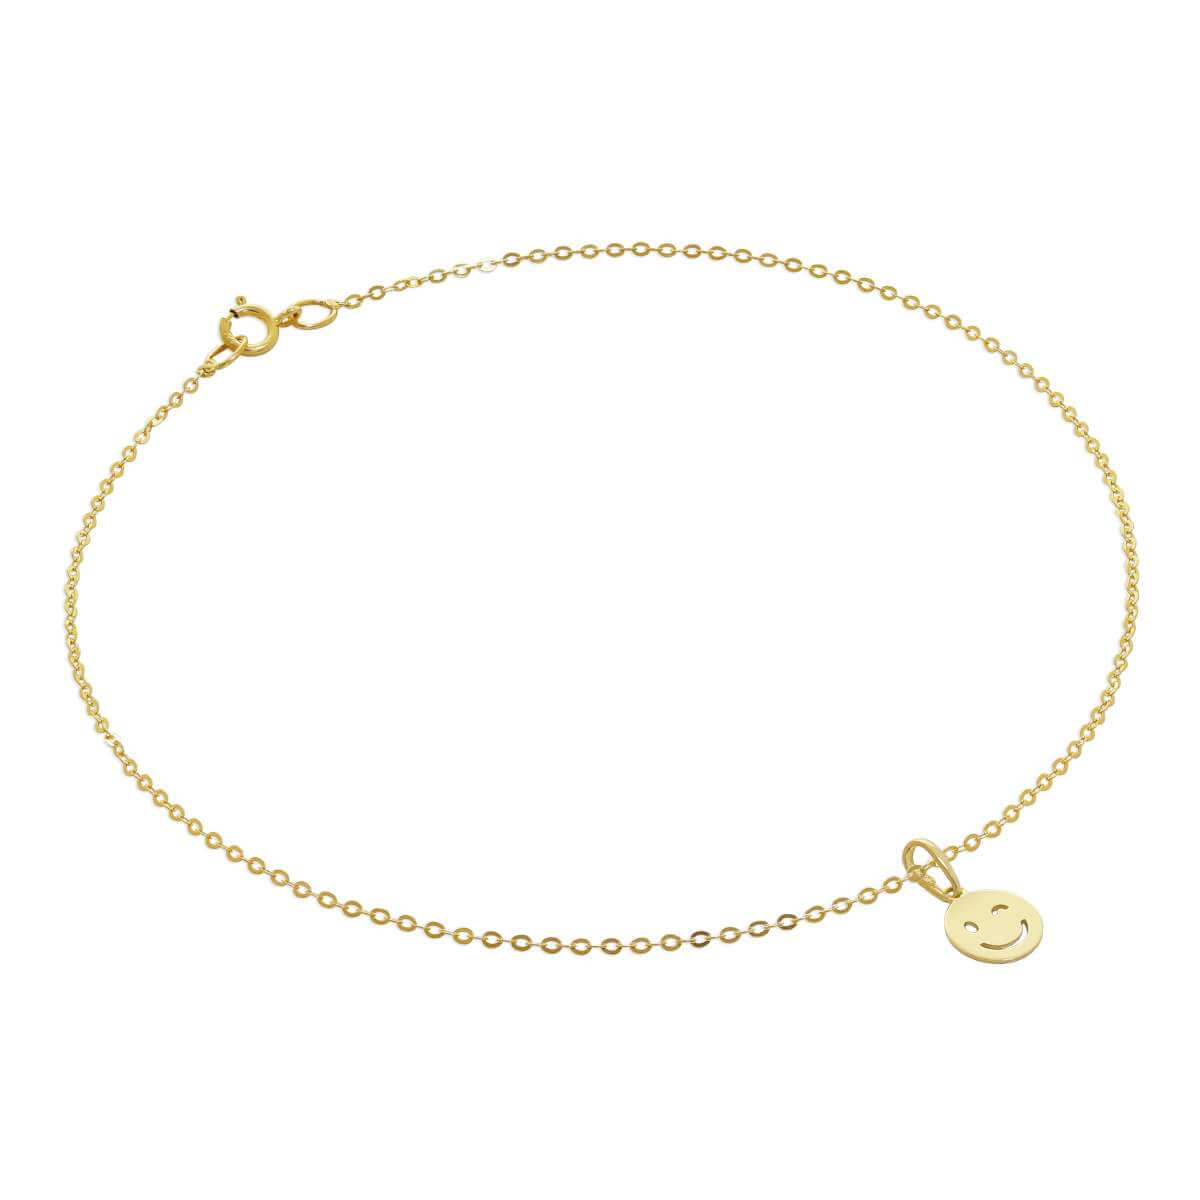 9ct Gold Hammered Trace Anklet with Winking Face Emoji Charm - 9.5 Inches